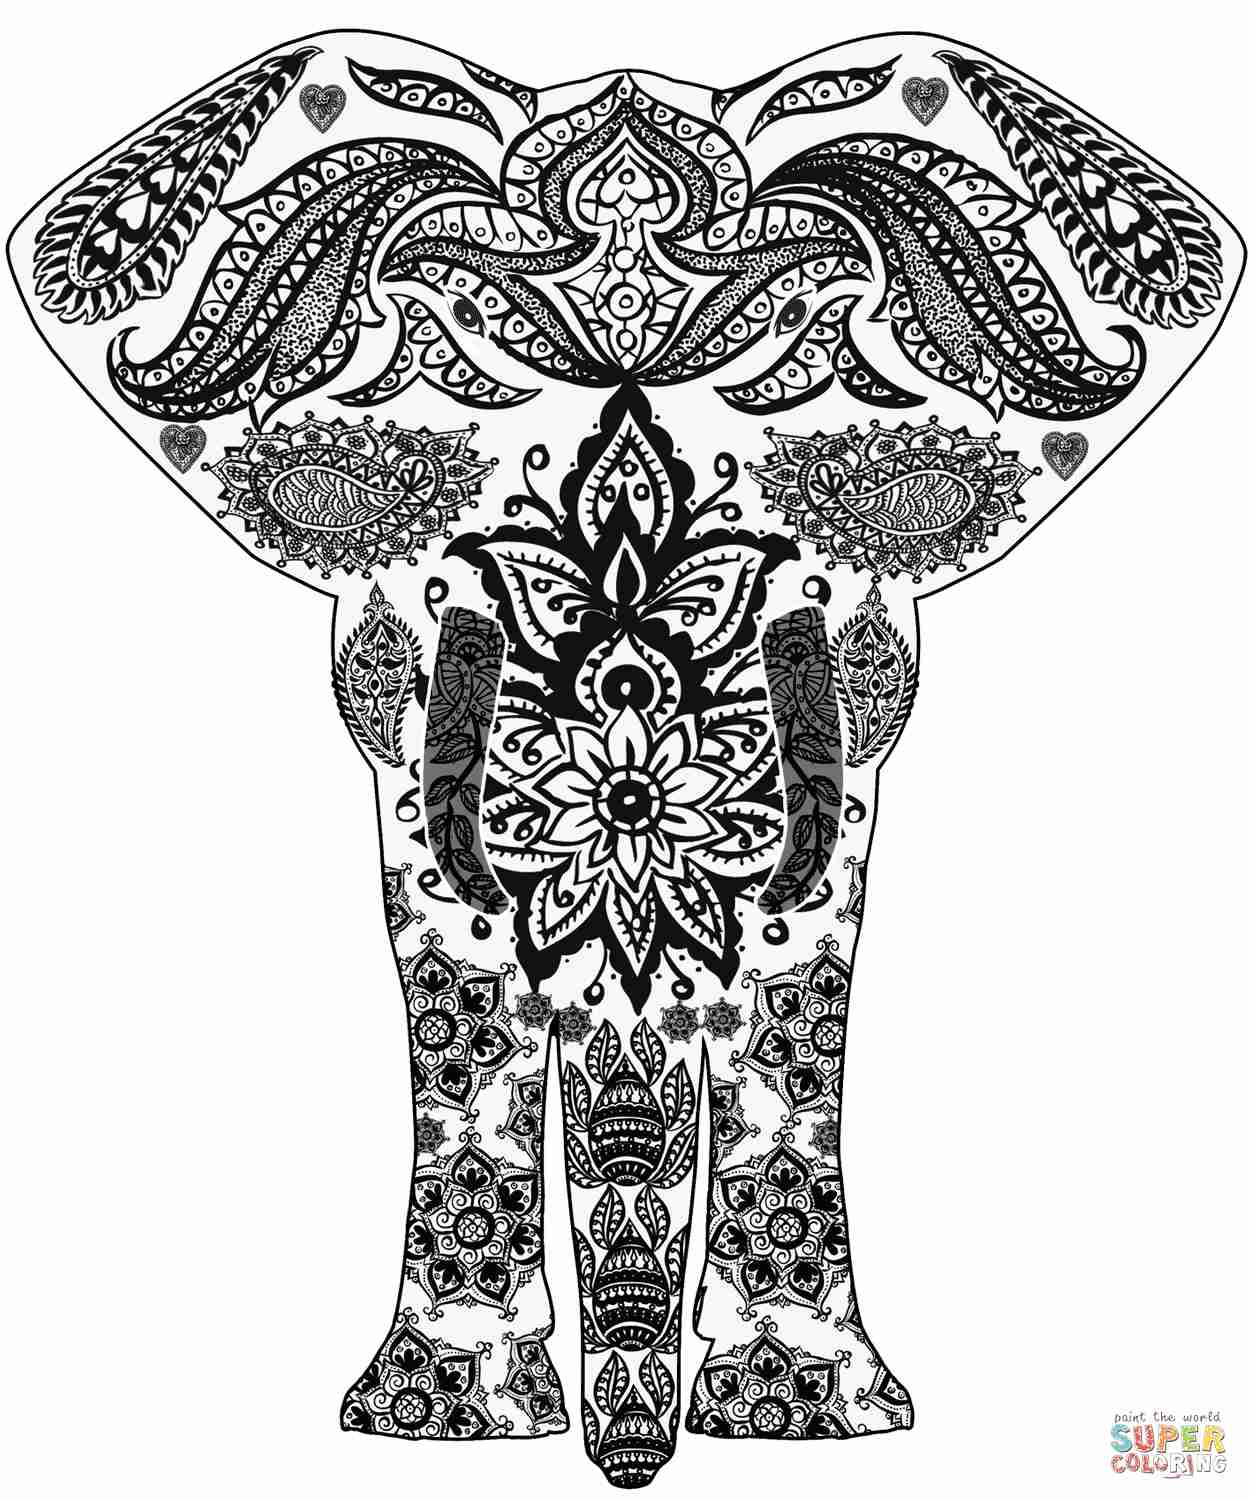 zentangle coloring pages free printable zentangle for kids zentangle kids coloring pages coloring pages free zentangle printable